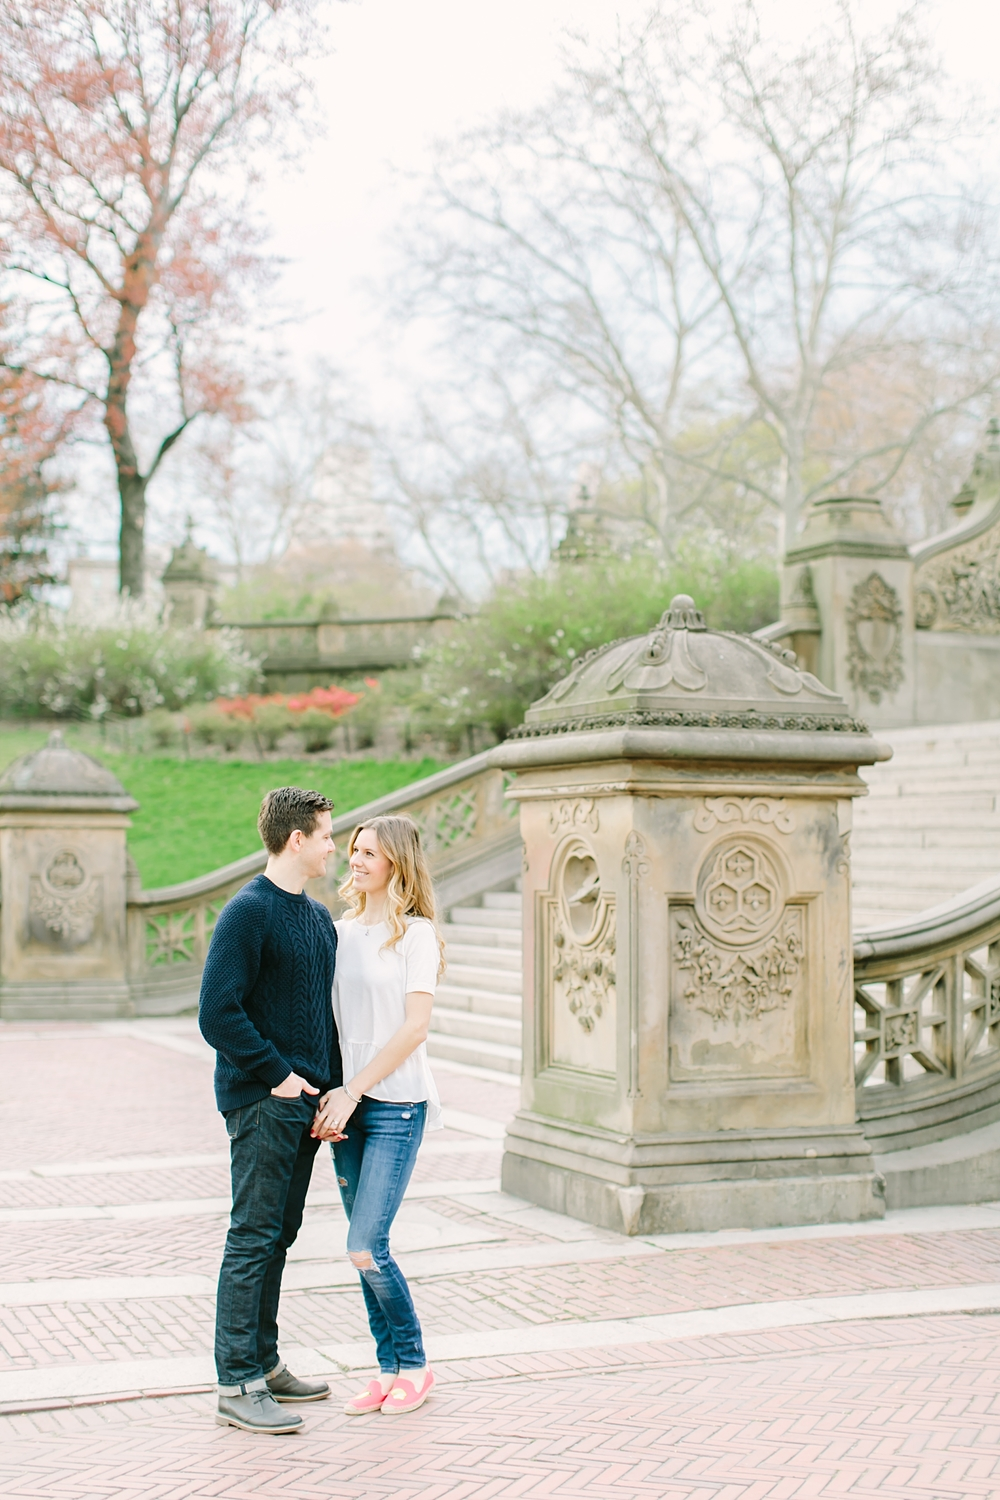 central_park_engagement_spring_photo_0019.jpg